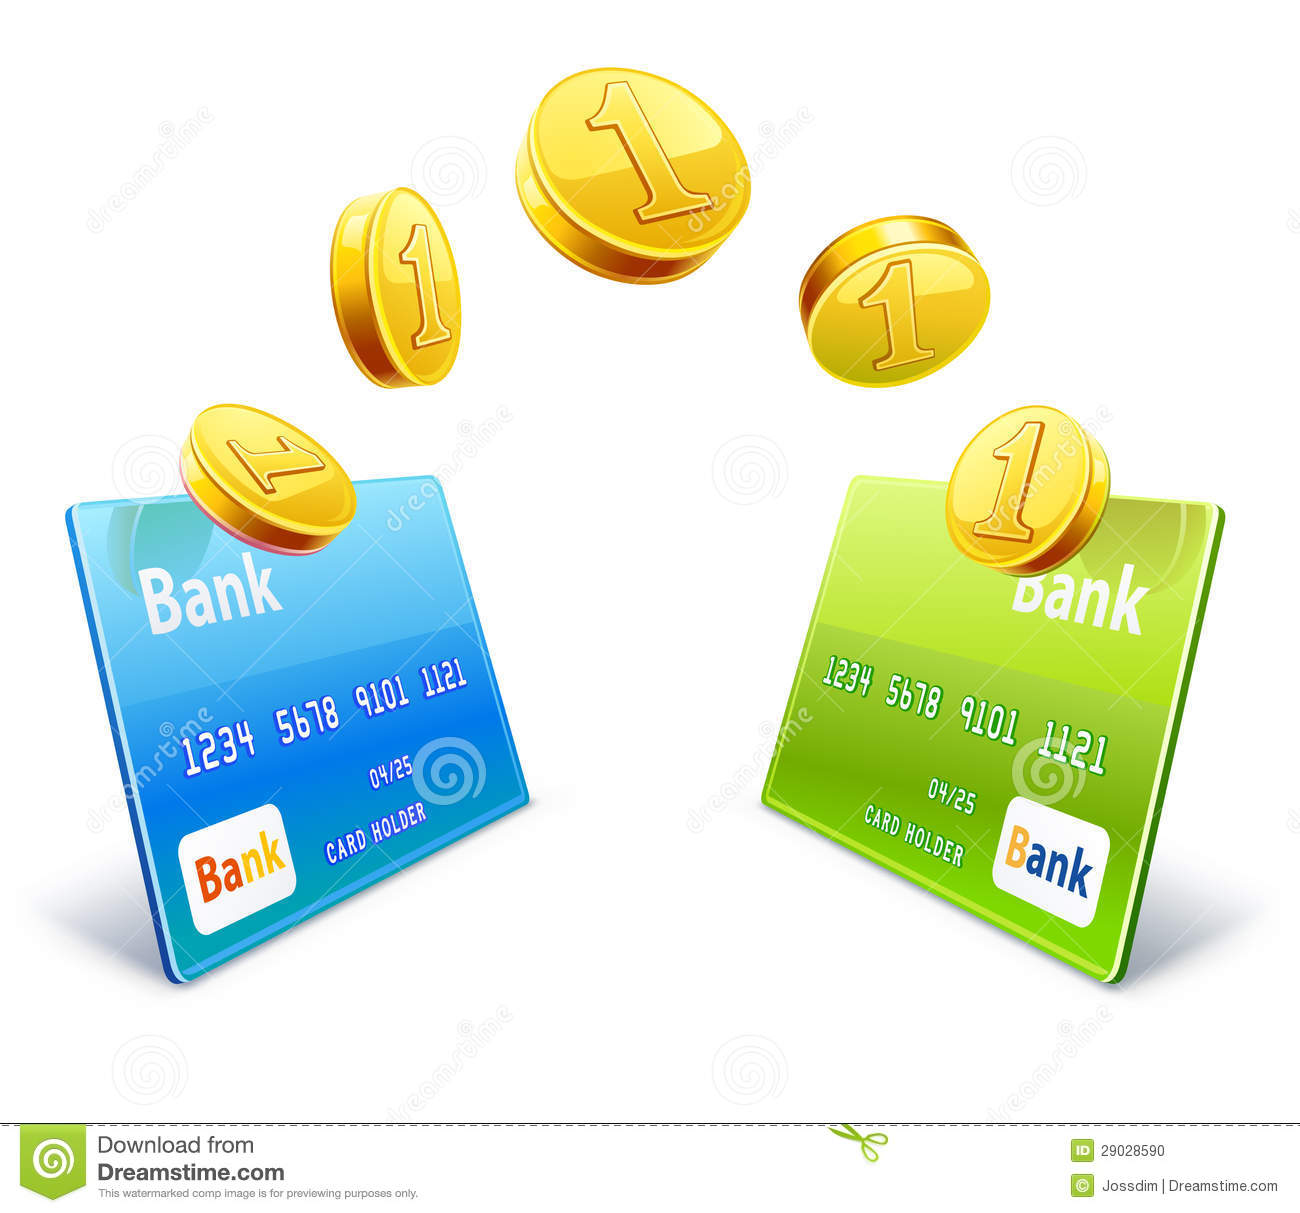 Money transfer clipart image royalty free stock Money transfer clipart - ClipartFest image royalty free stock